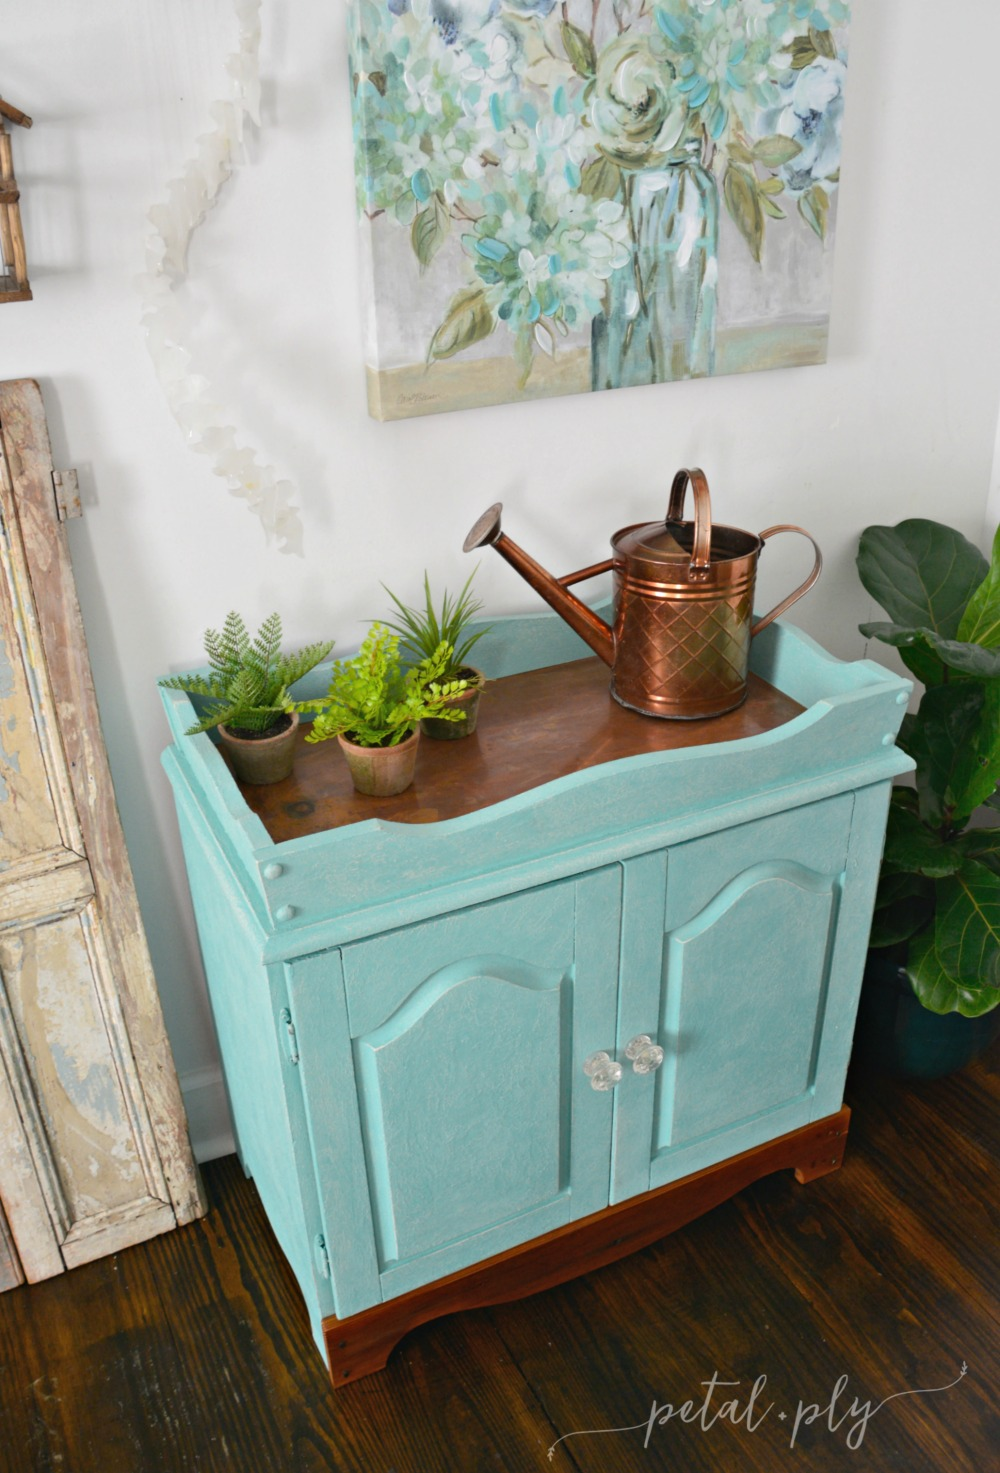 wm-painted-copper-topped-dry-sink-cabinet